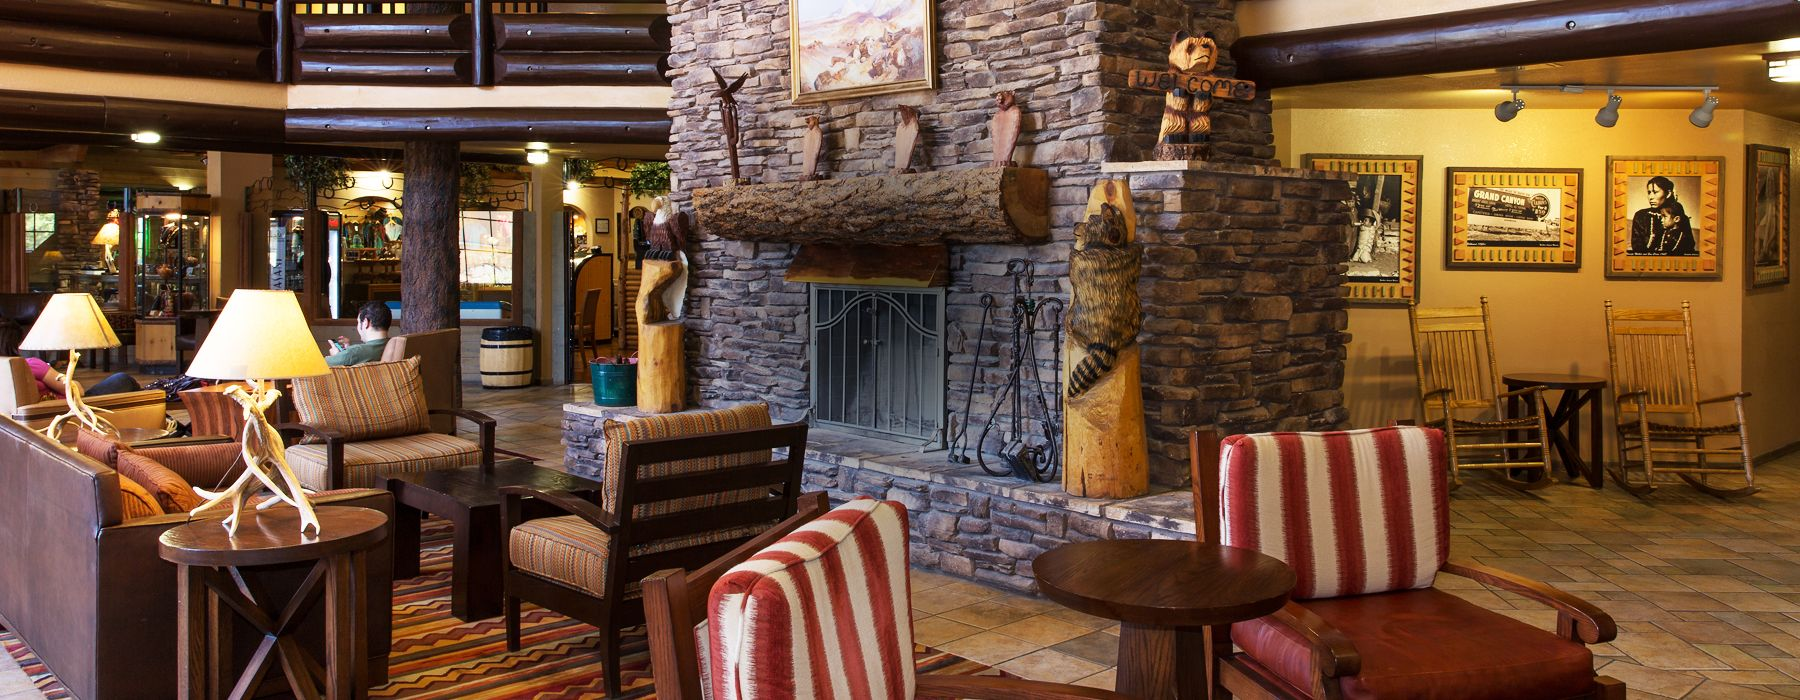 Visit The Grand Hotel Website For A Lookat An Incredible Canyon Resort In Arizona Our Photo Gallery Consists Of Pics And